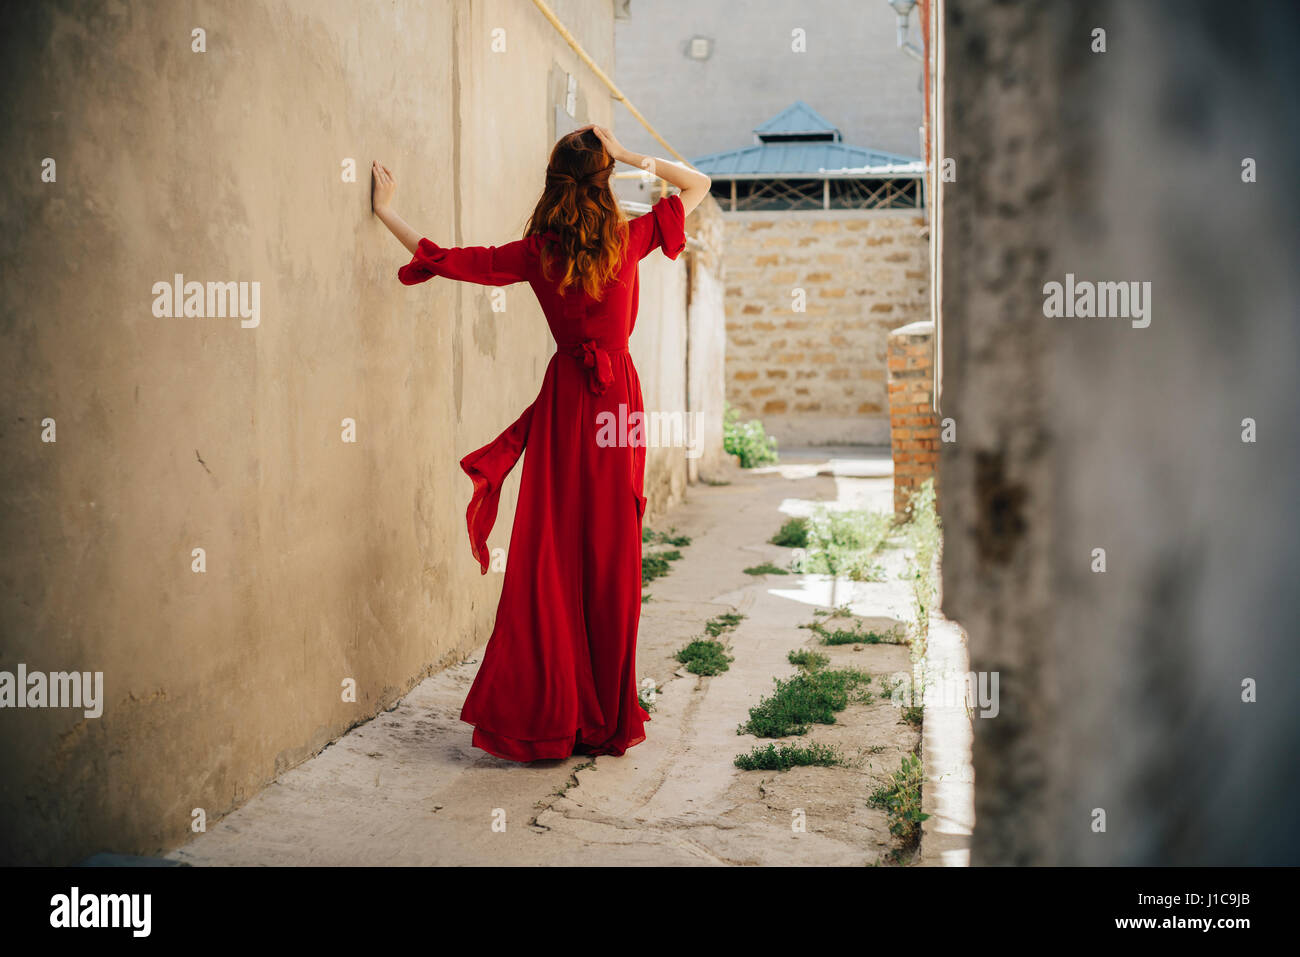 Caucasian woman wearing red dress in alley - Stock Image